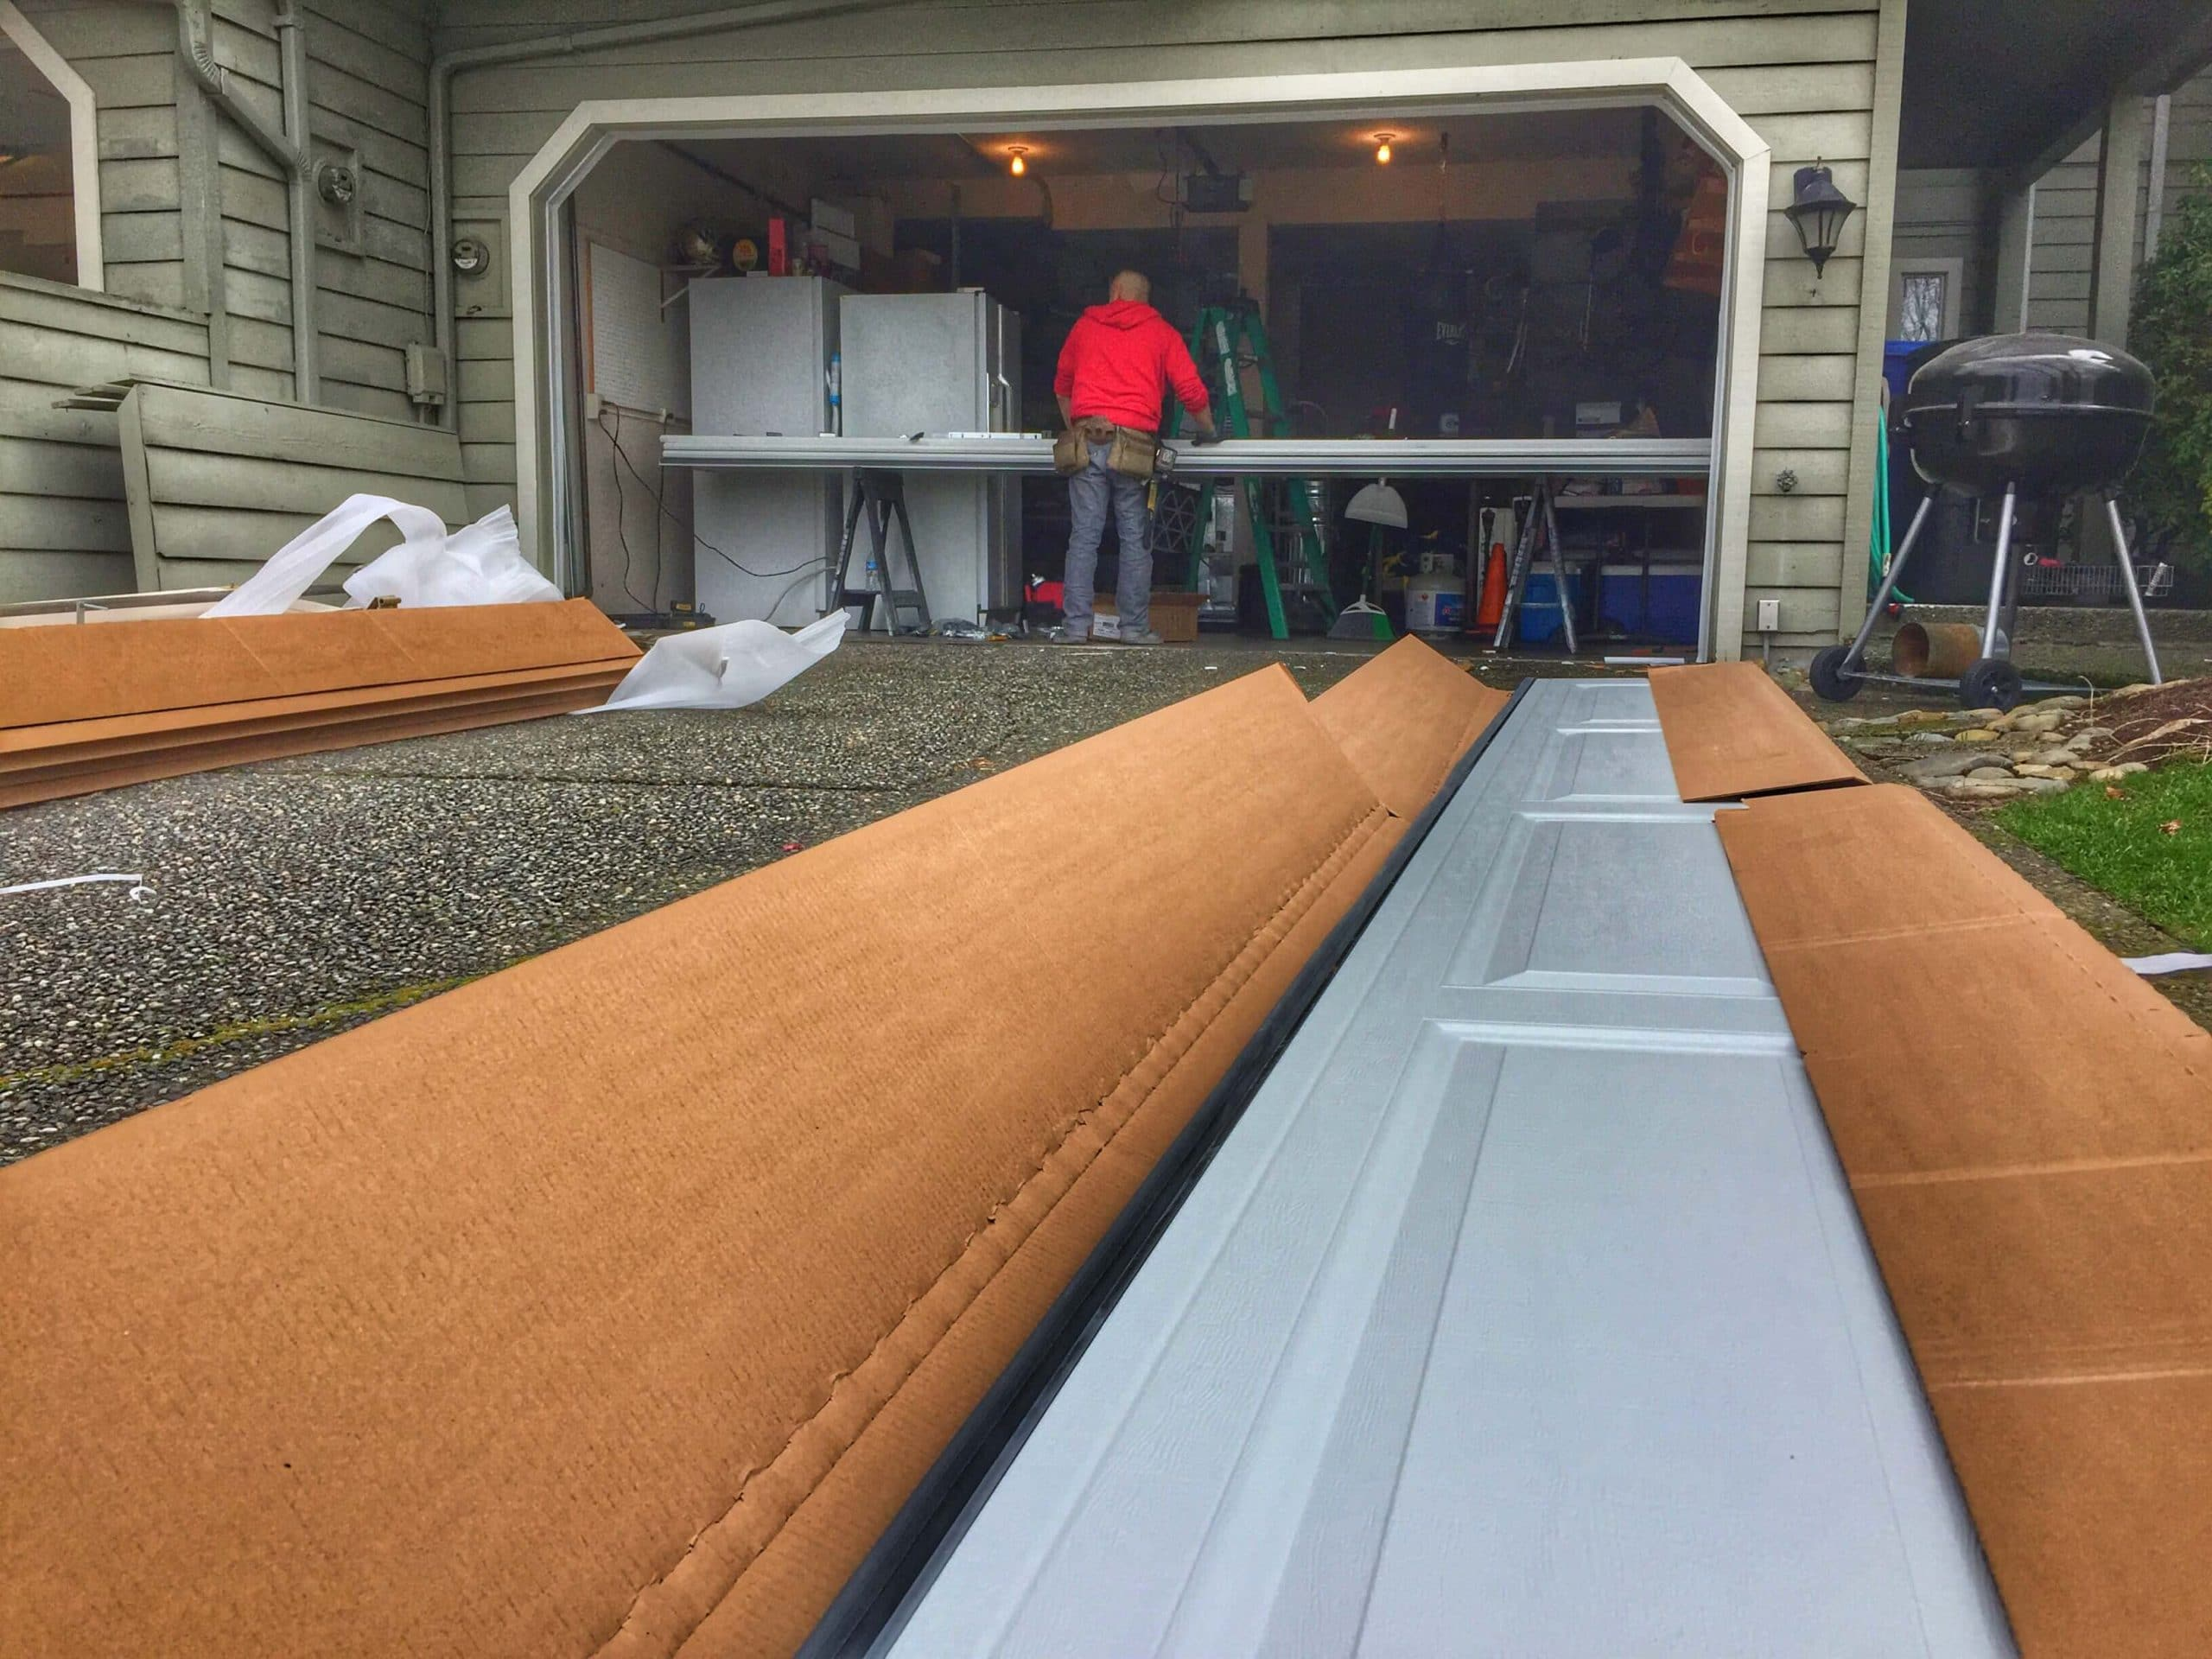 Perfect New Garage Door Installation In Lake Stevens WA By Elite Tech Services LLC.  1; 2; 3